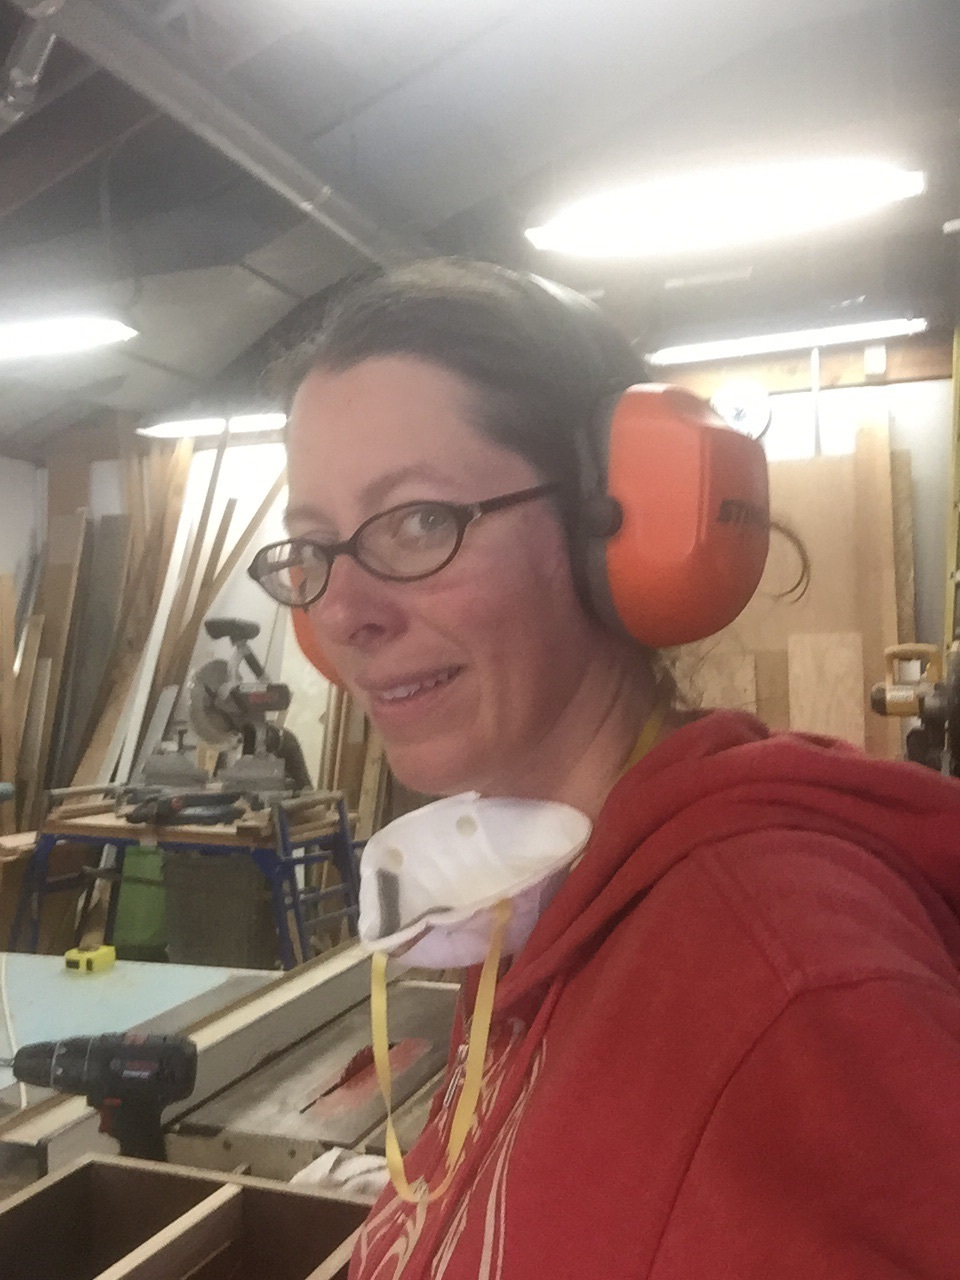 In the wood shop